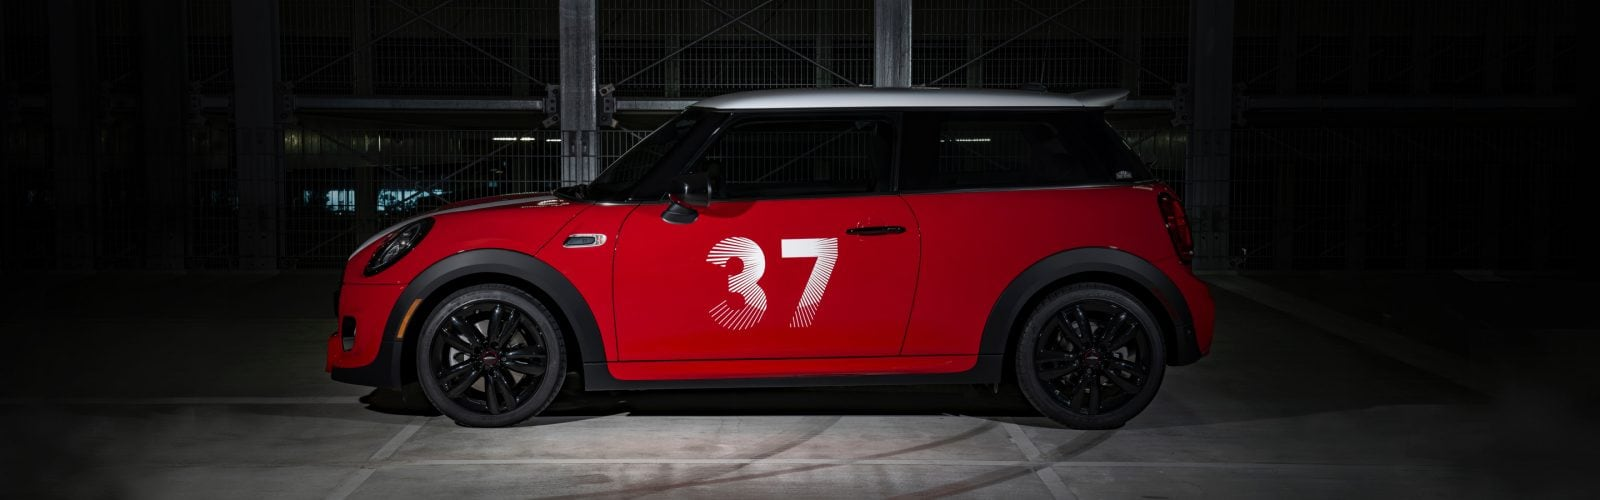 MINI A side view The MINI Cooper S Hardtop 2 Door Paddy Hopkirk Edition #37